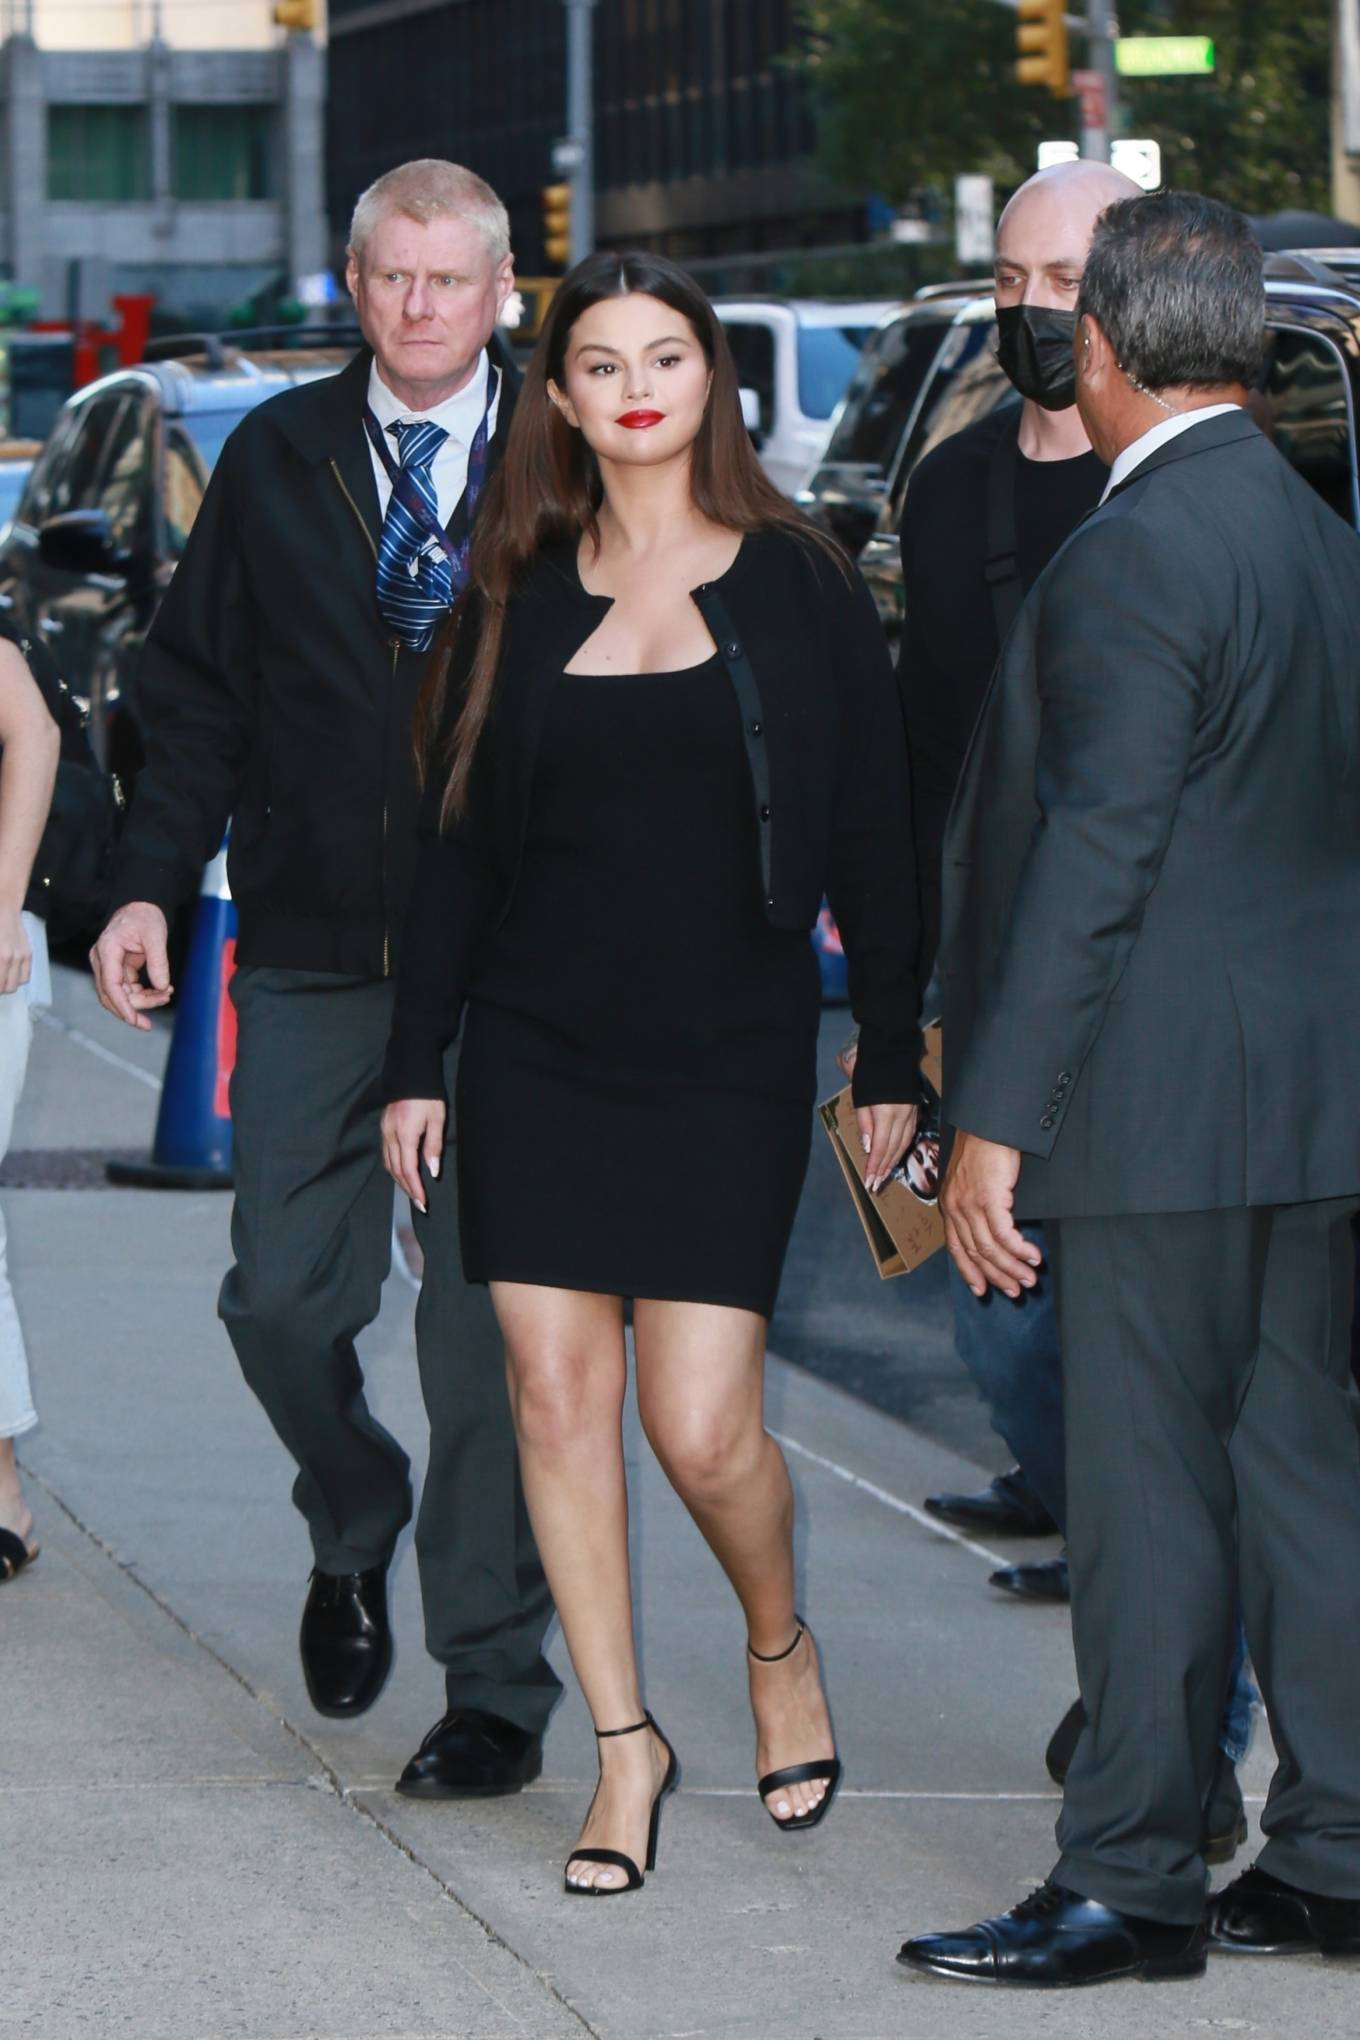 Selena Gomez wearing sleek black Saint Laurent ankle sandals with stiletto heels and ankle strap